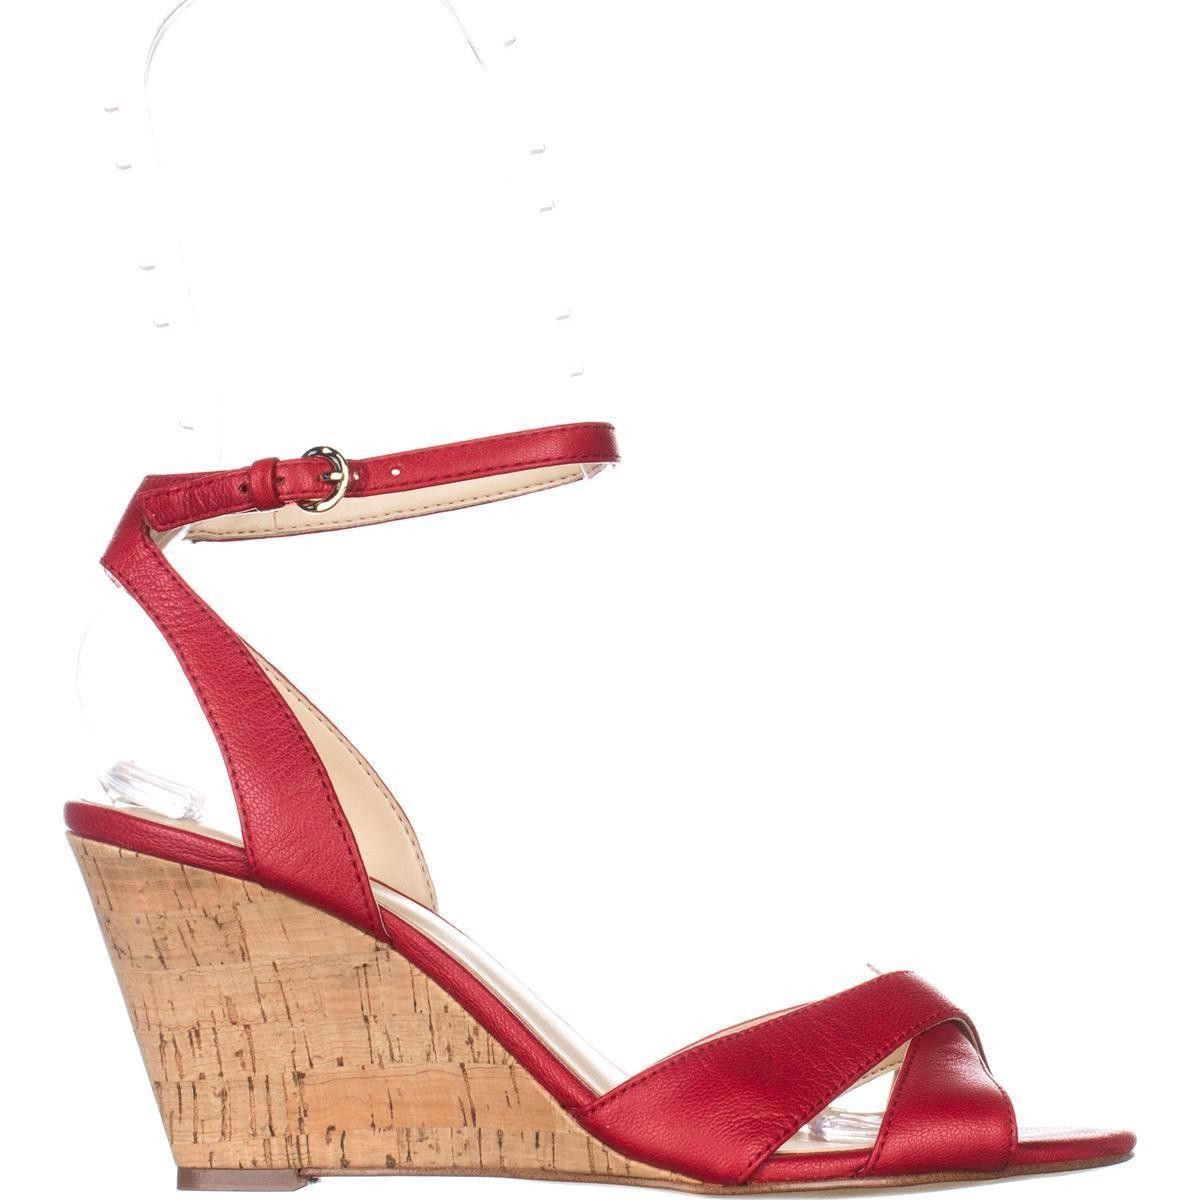 57a3285fb828 Nine West Kami Ankle-Strap Wedge Sandals